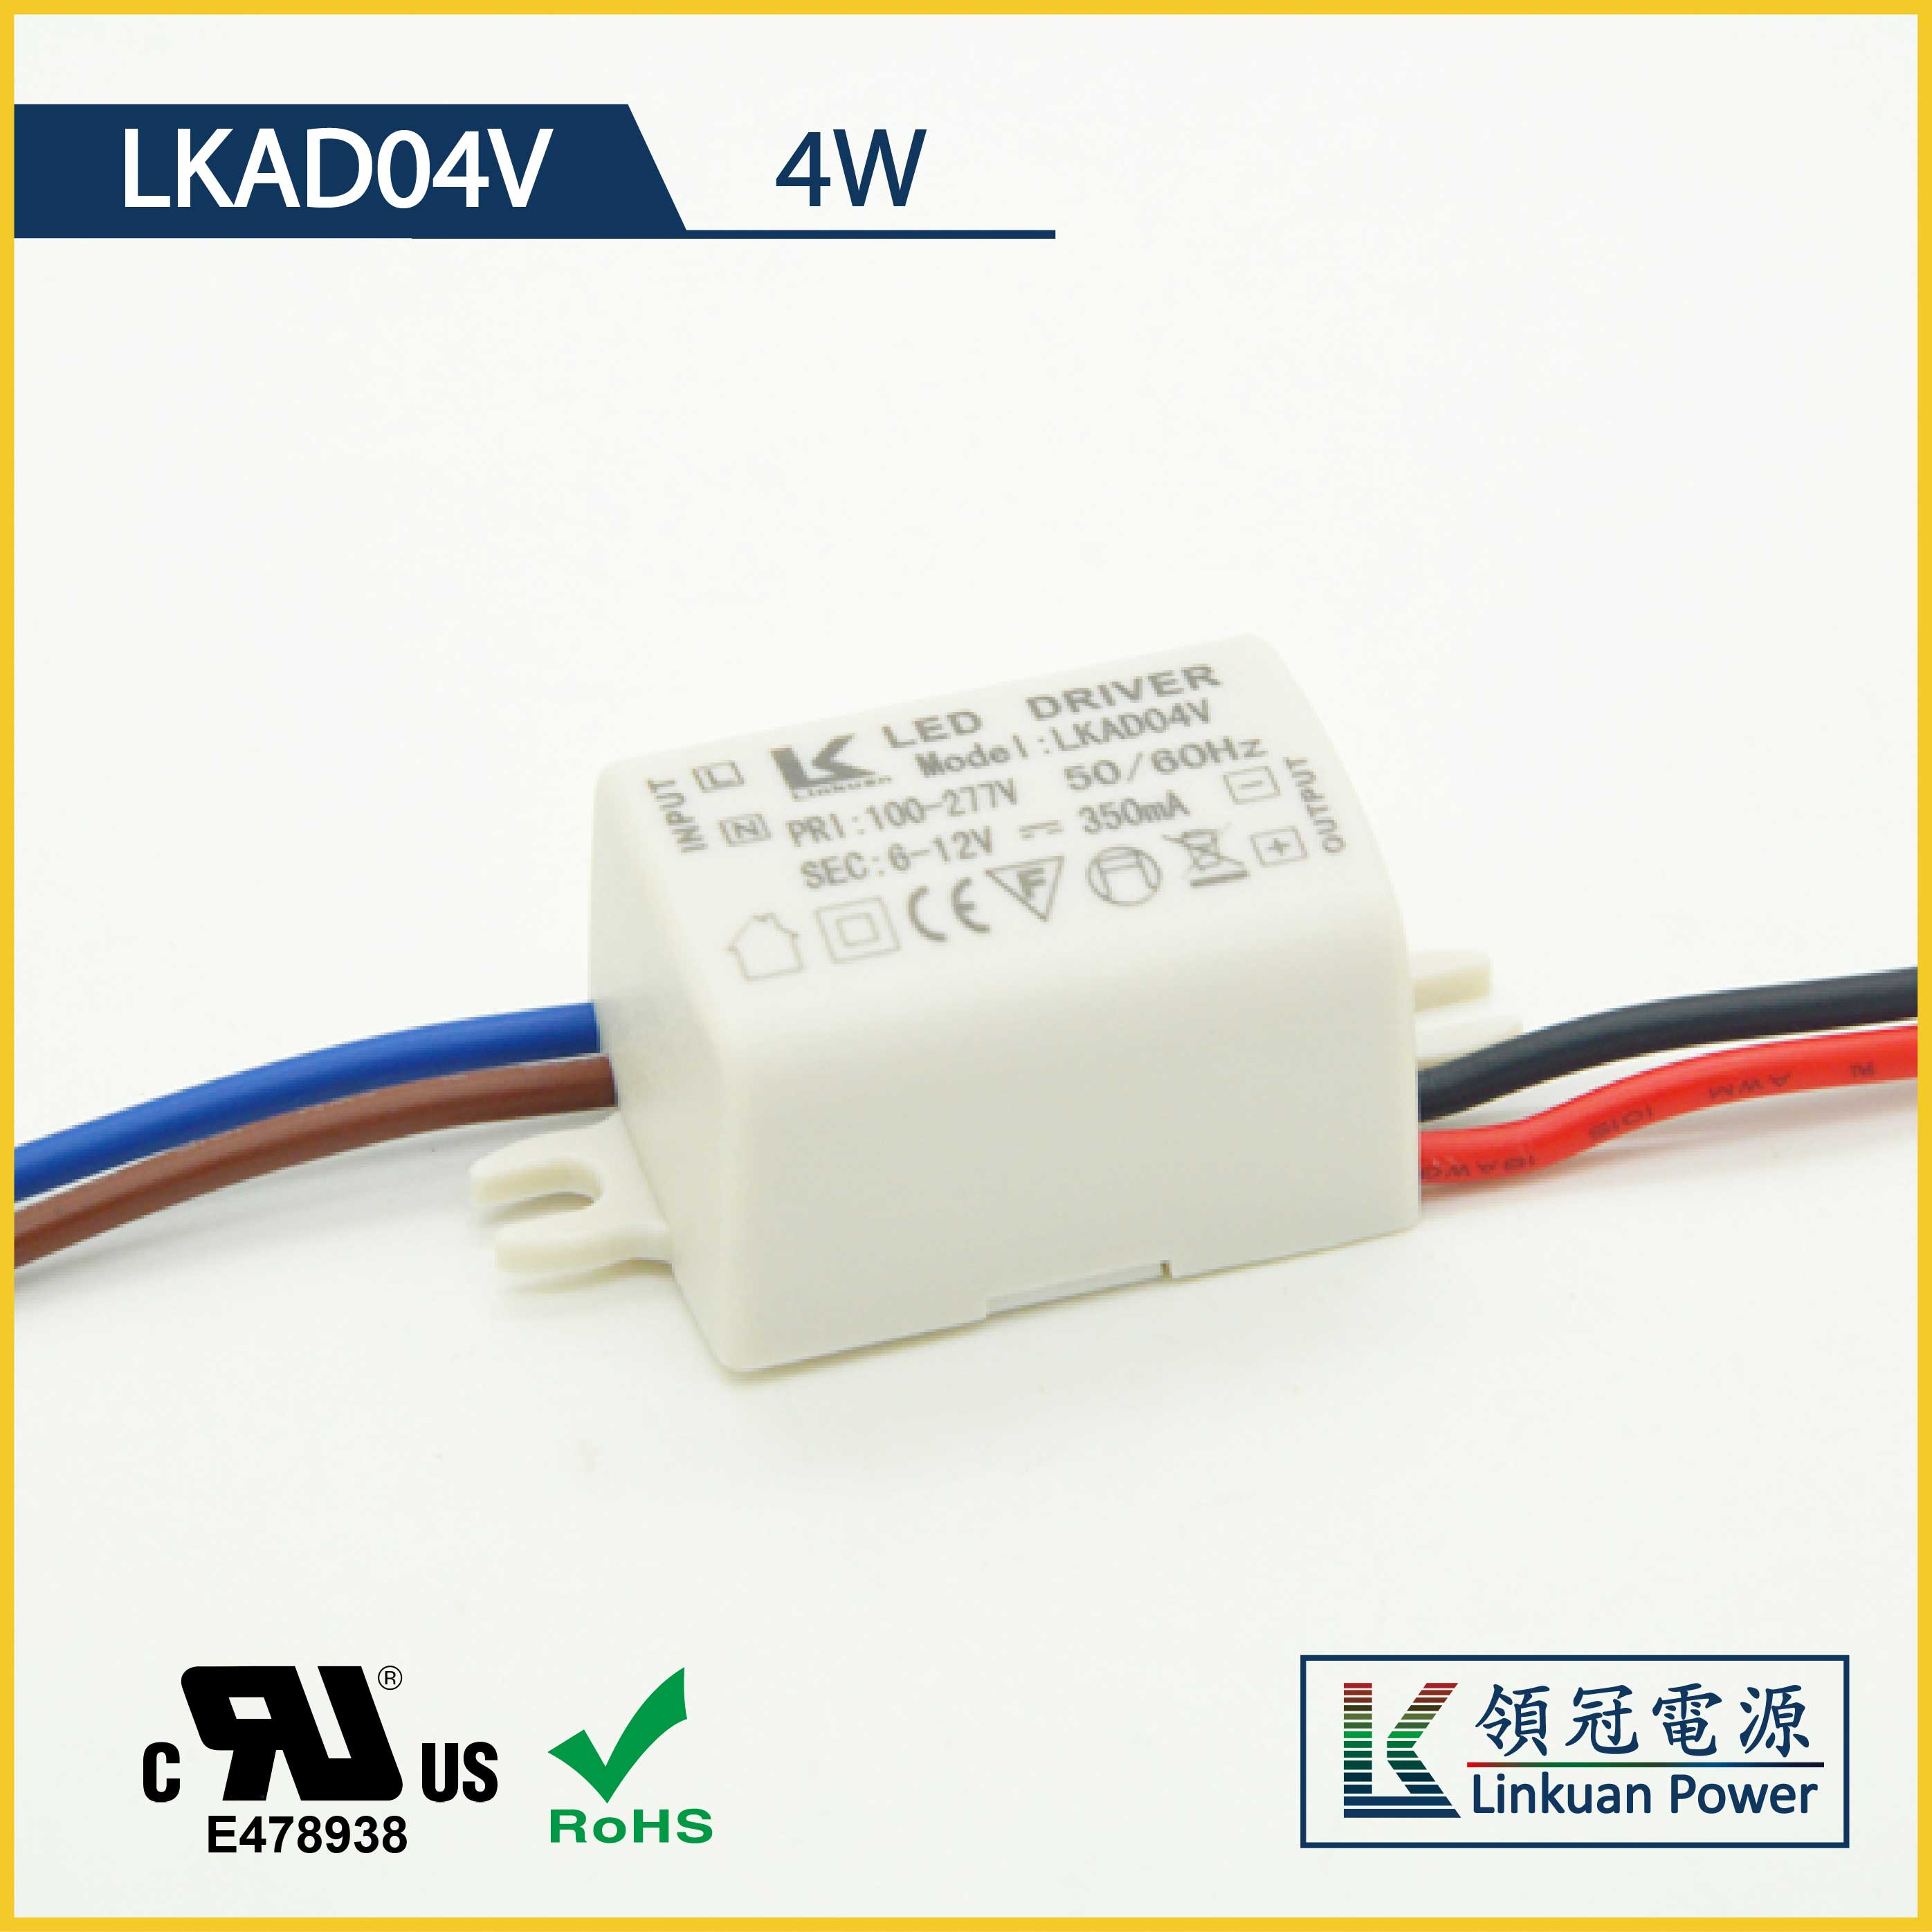 UL approved 4W contant voltage 12/24V LED drivers